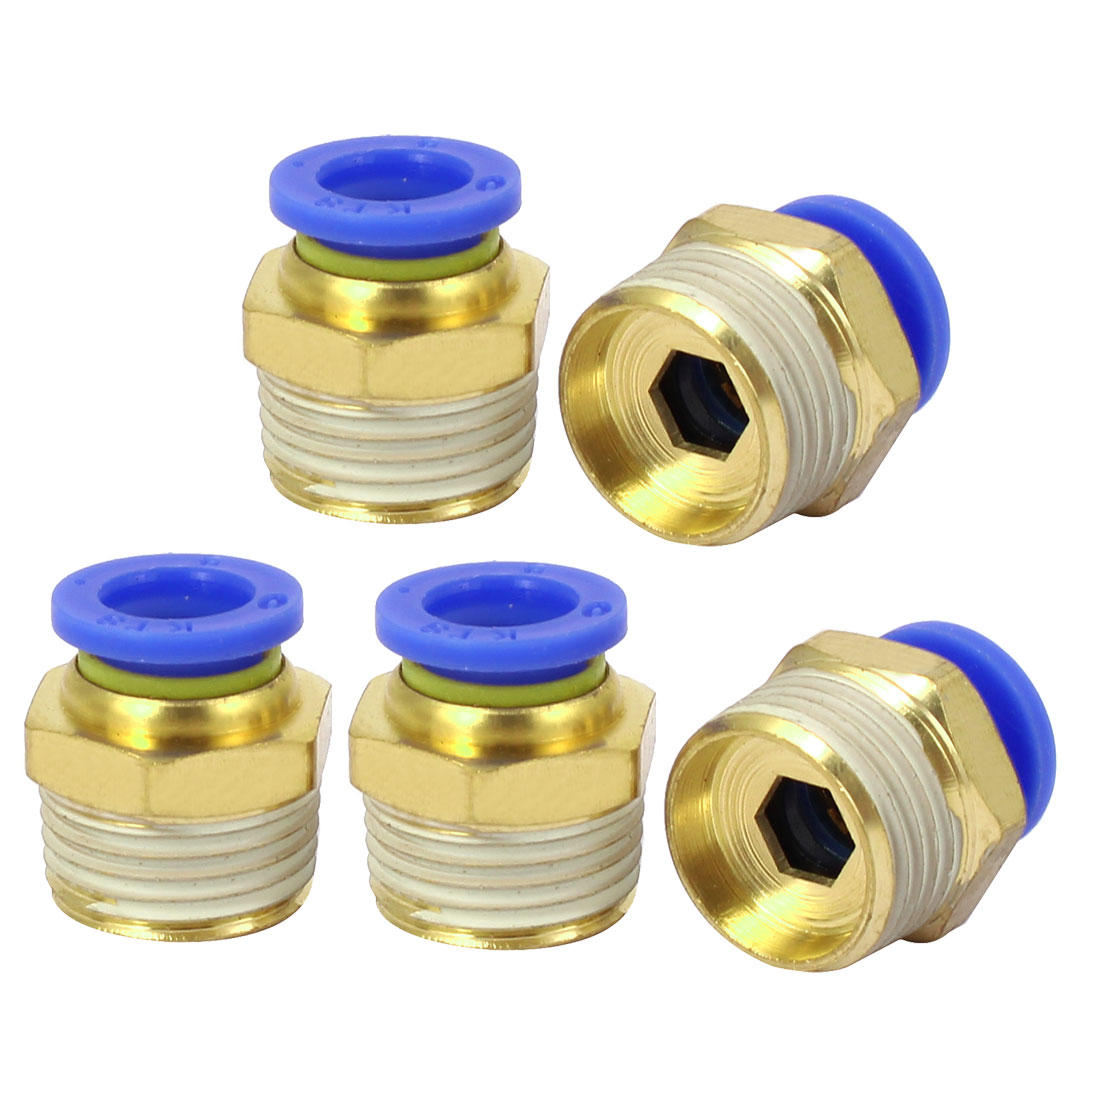 16mm Dia Male Thread Industry Pipe Tube Quick Connecting Fittings 5pcs